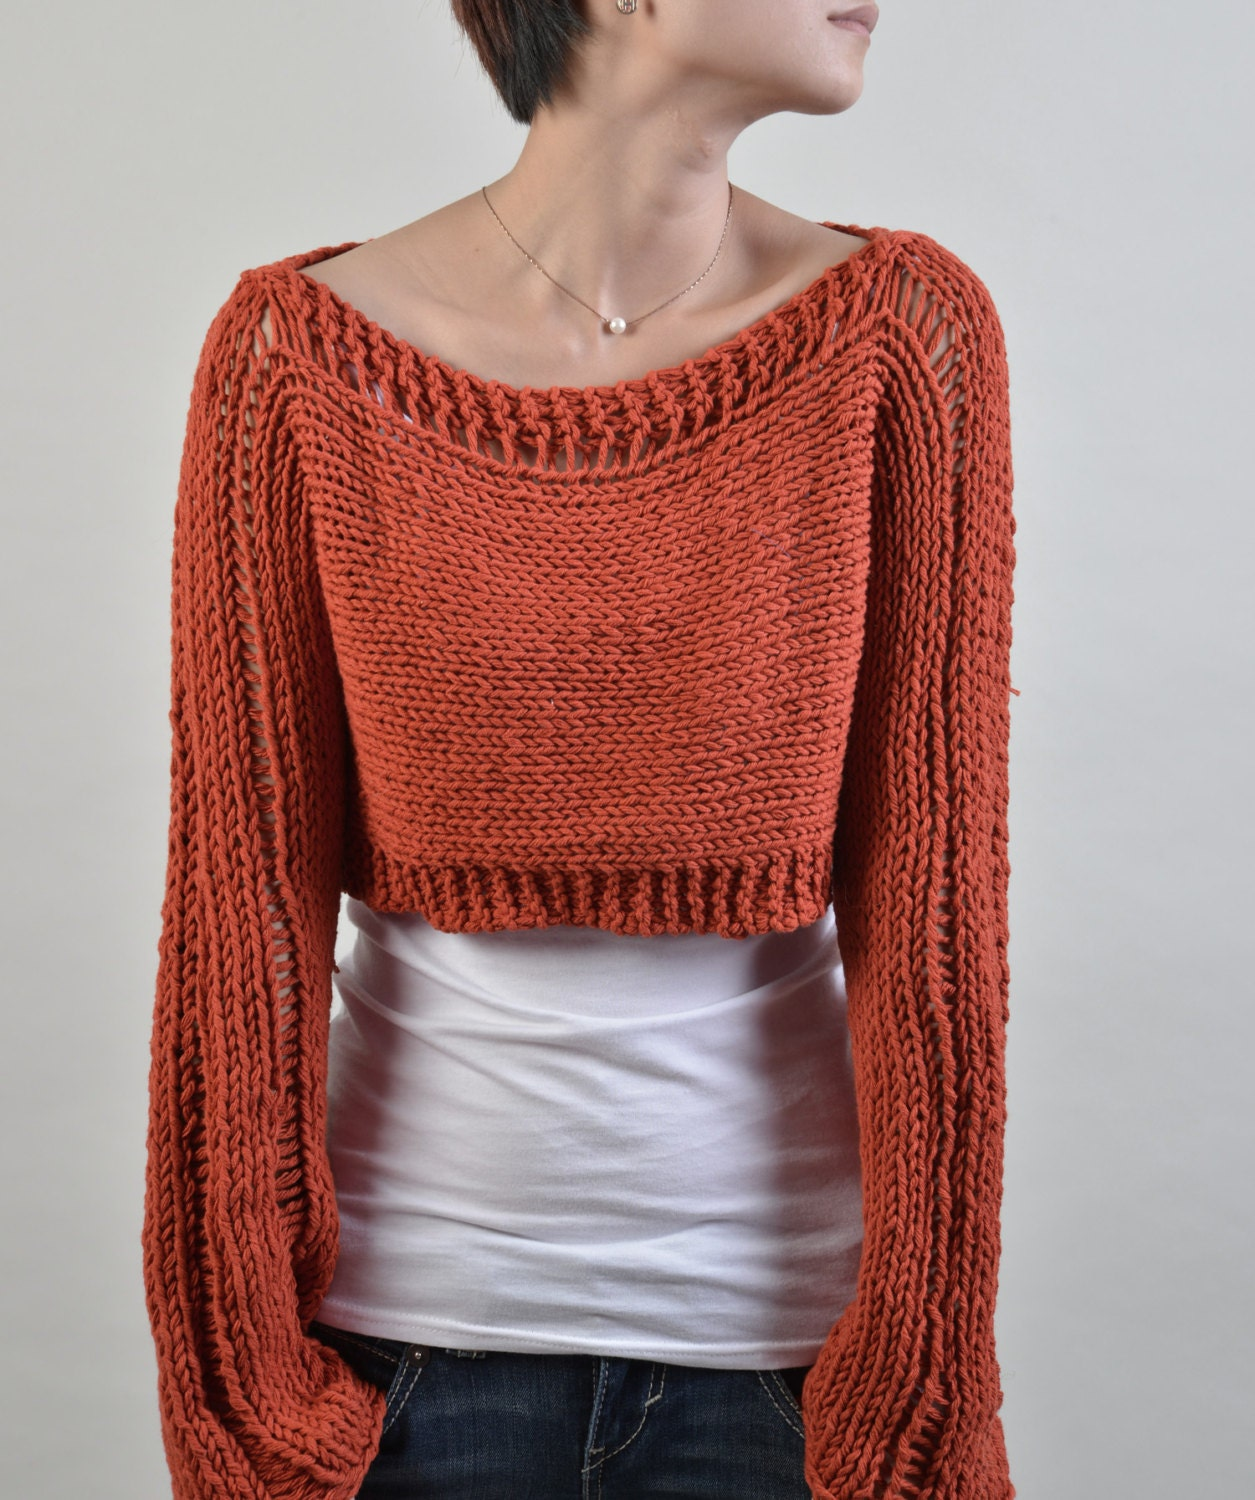 Hand knit woman sweater cropped cotton sweater Little cover up top ...